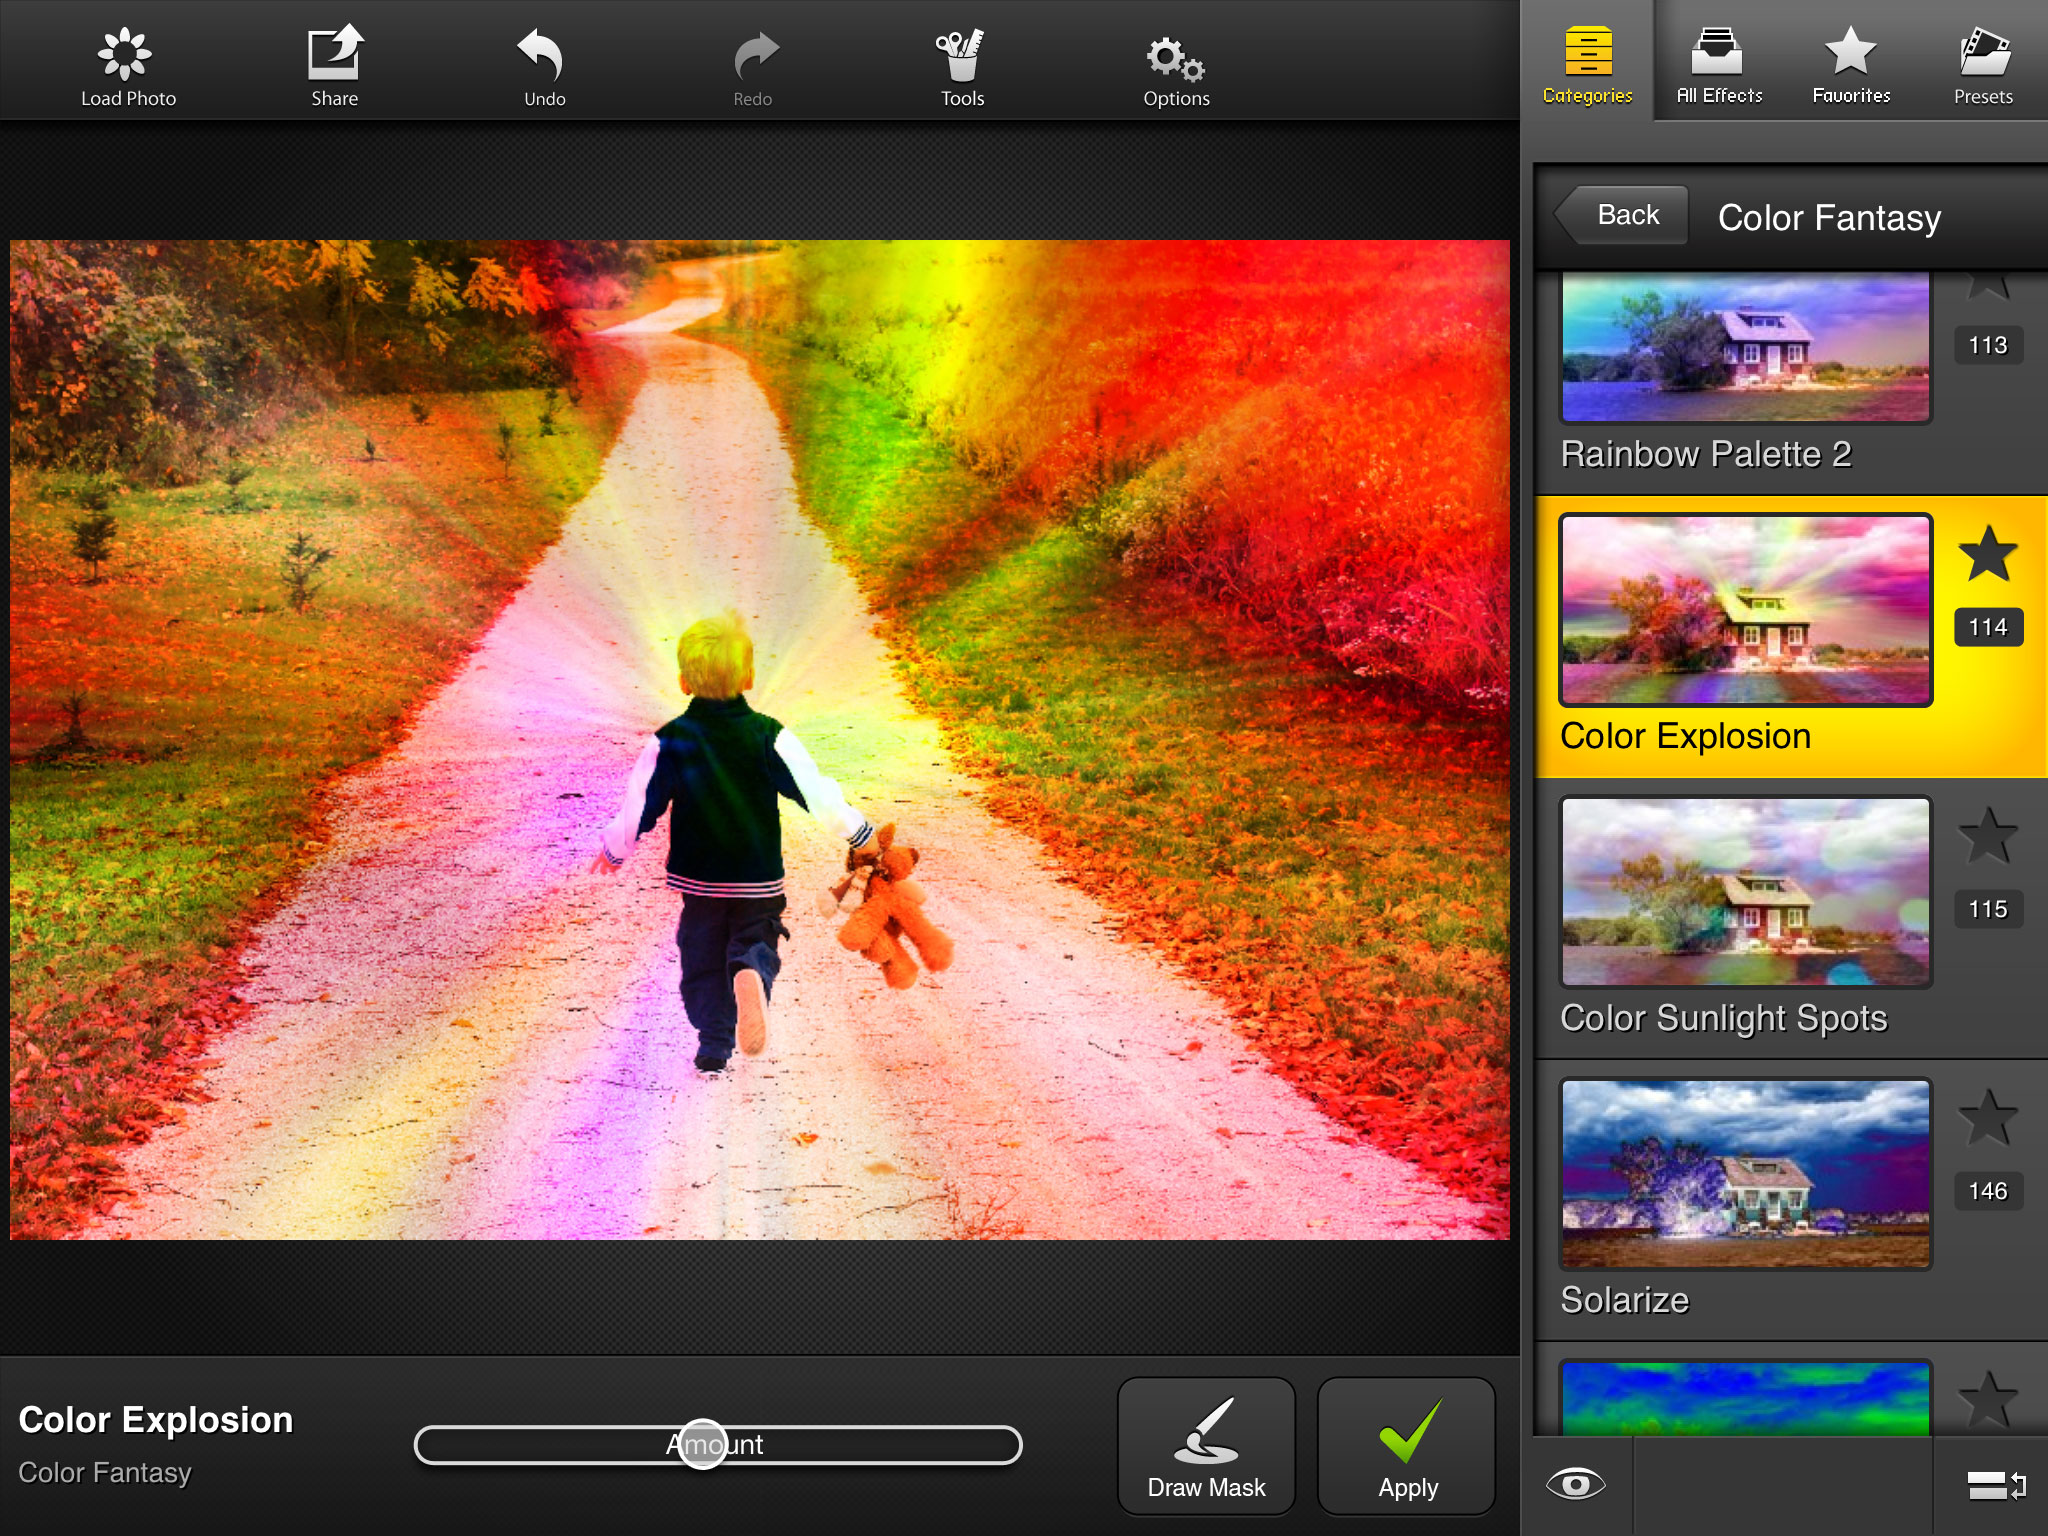 fx-photo-studio-hd-filter-options